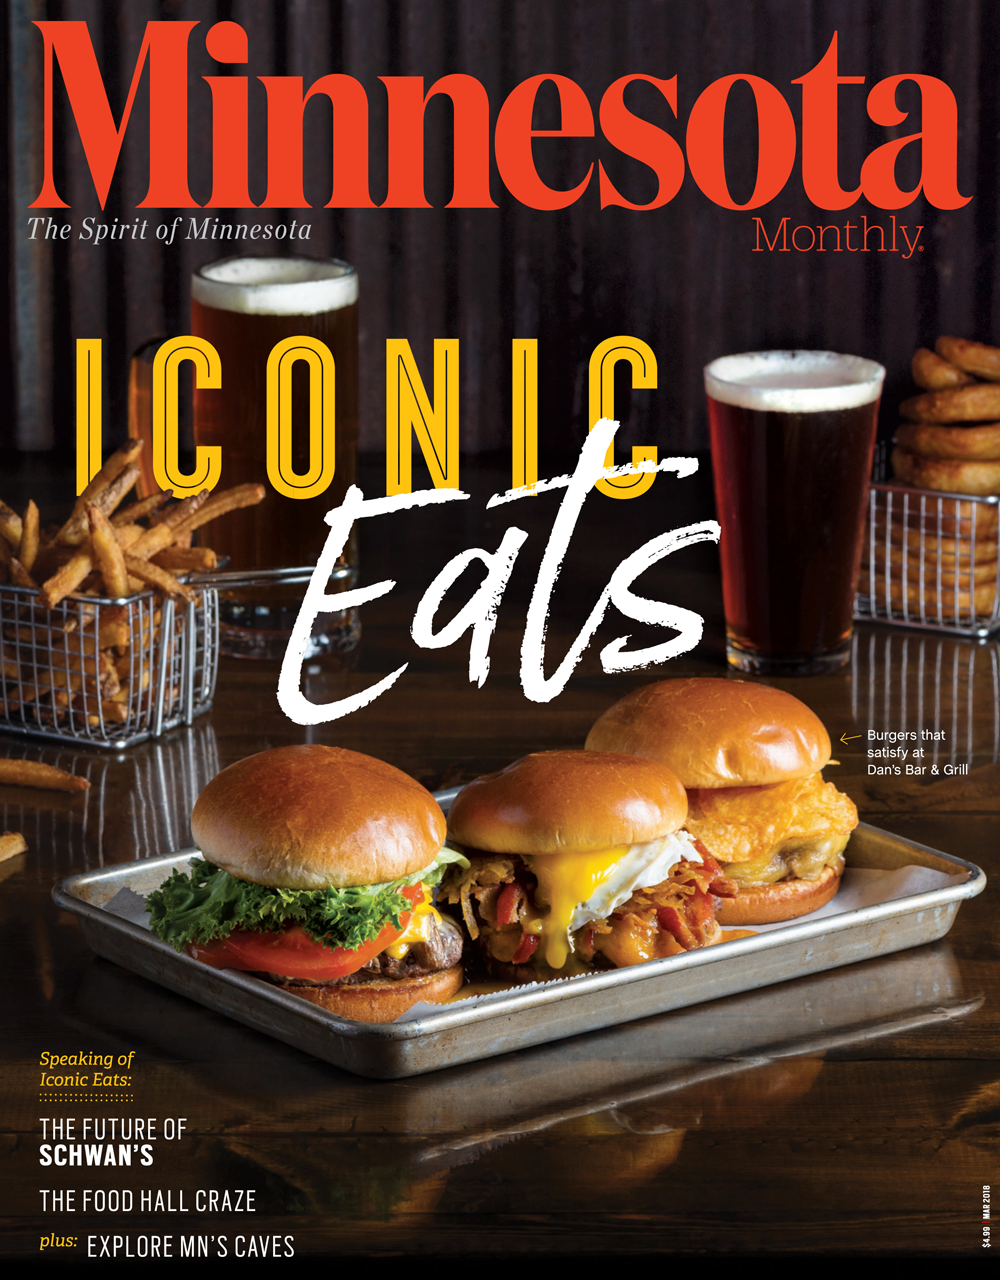 Subscribe to Minnesota Monthly Magazine